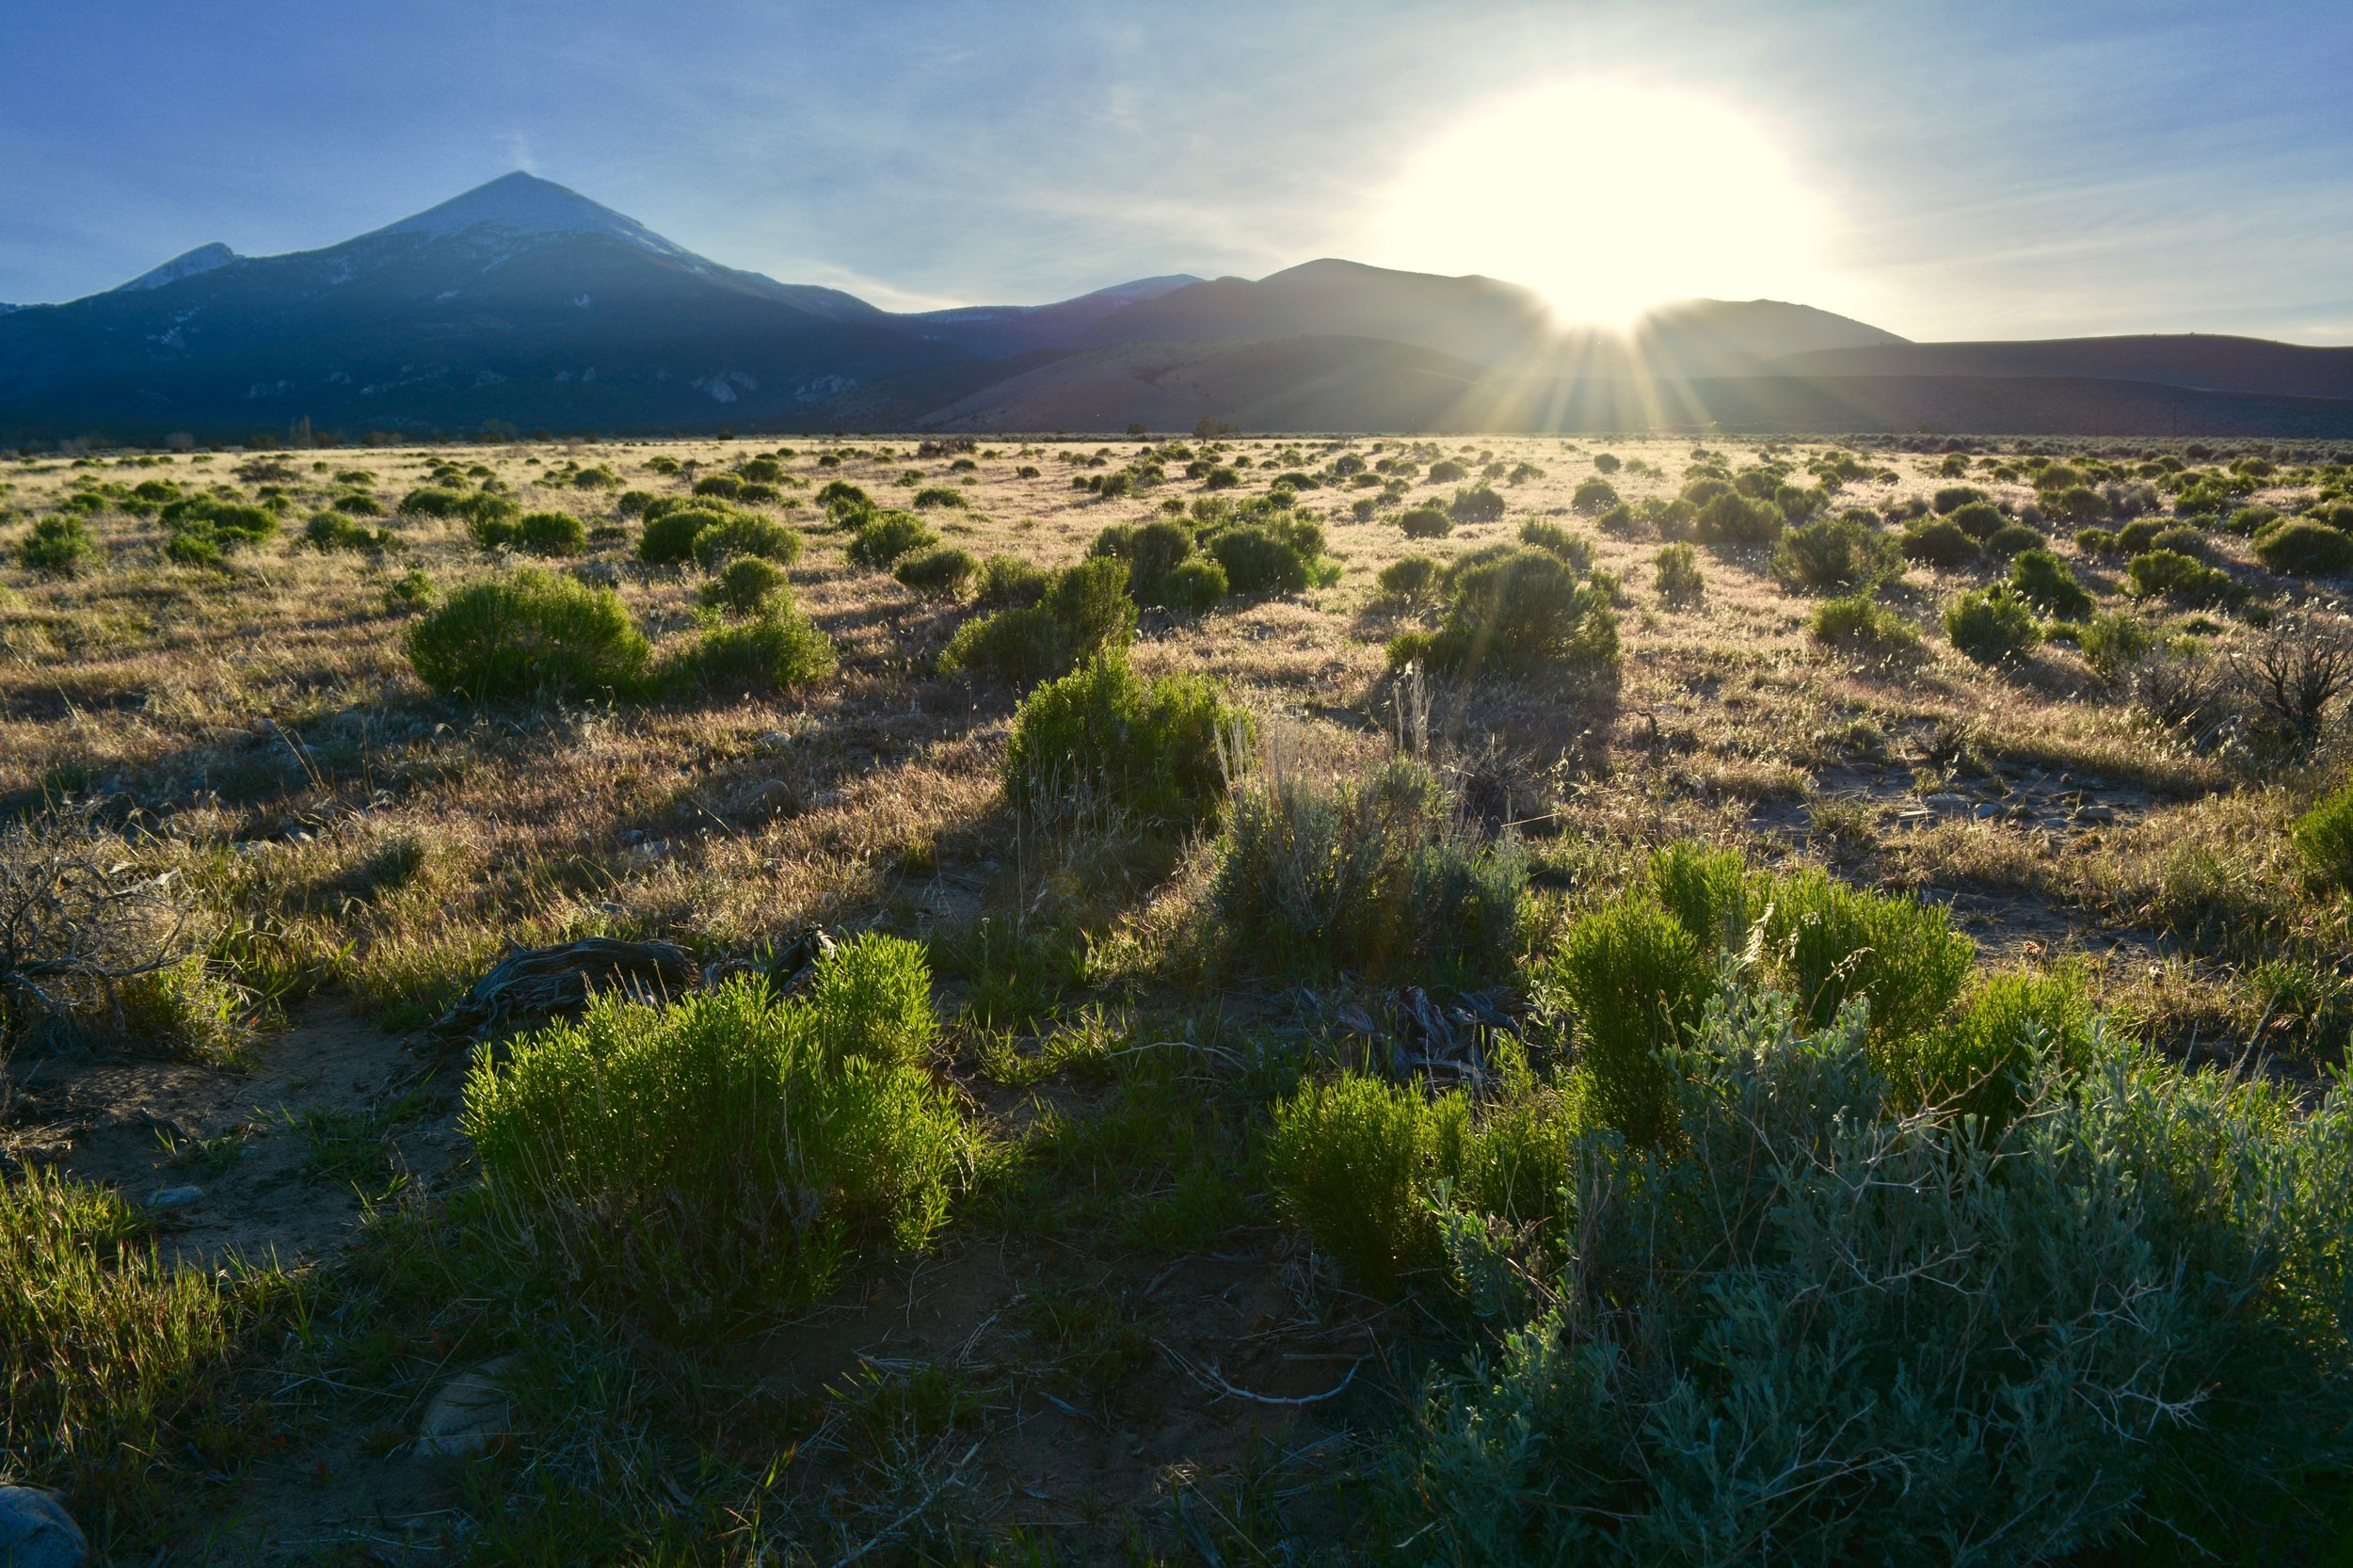 Sunset at Great Basin National Park entrance